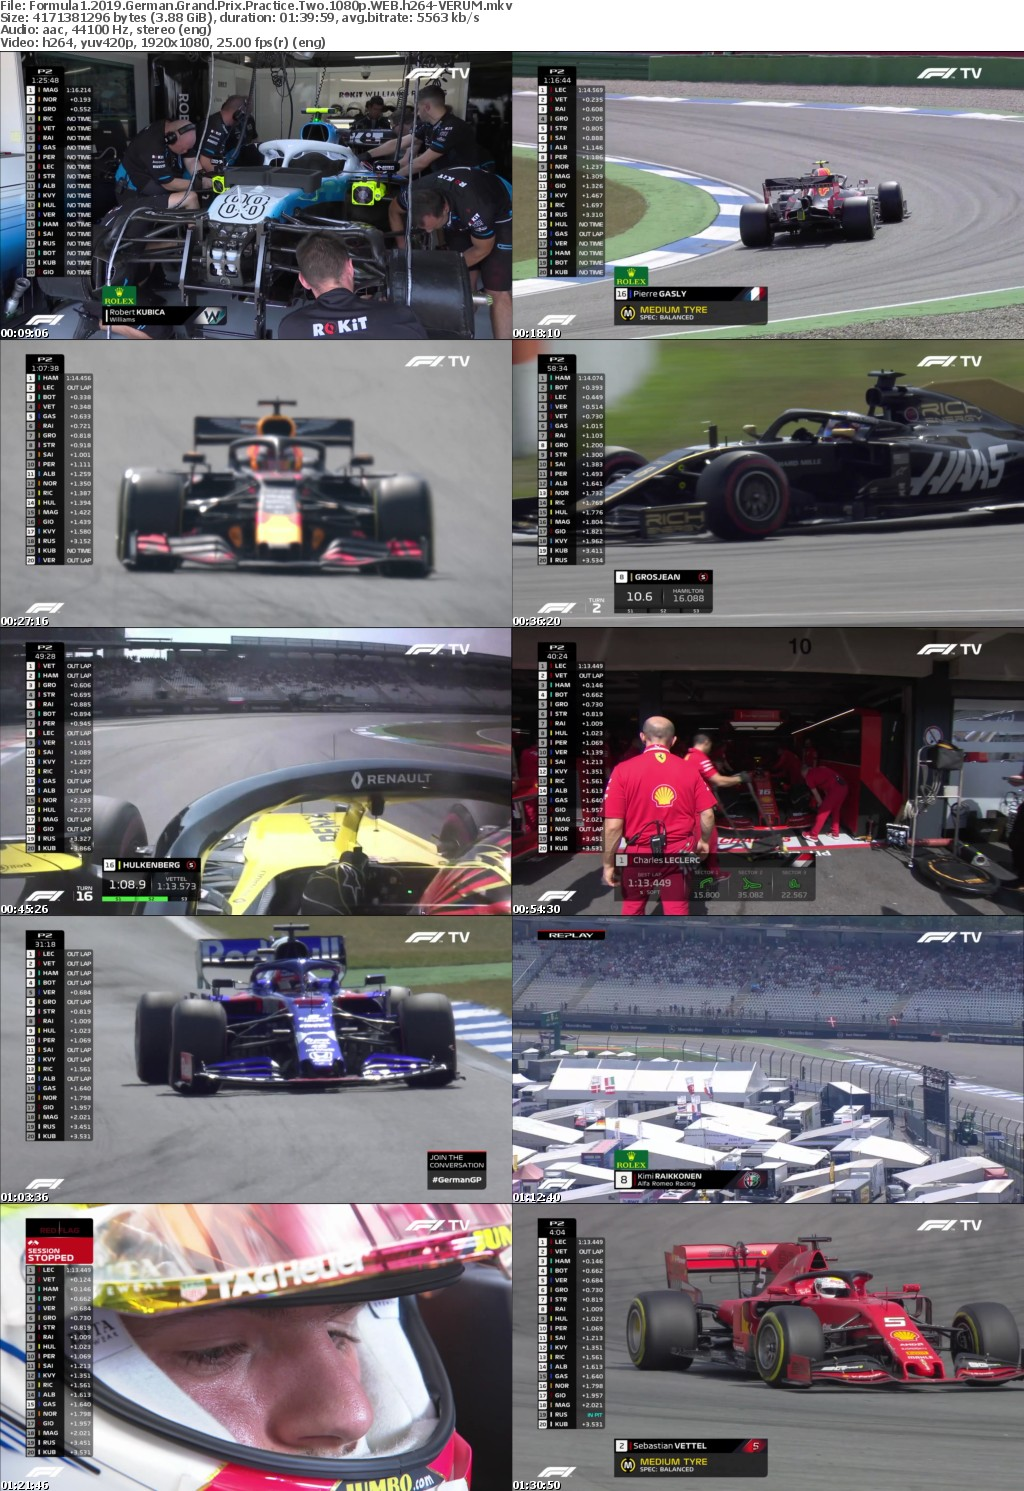 Formula1 2019 German Grand Prix Practice Two 1080p WEB h264-VERUM